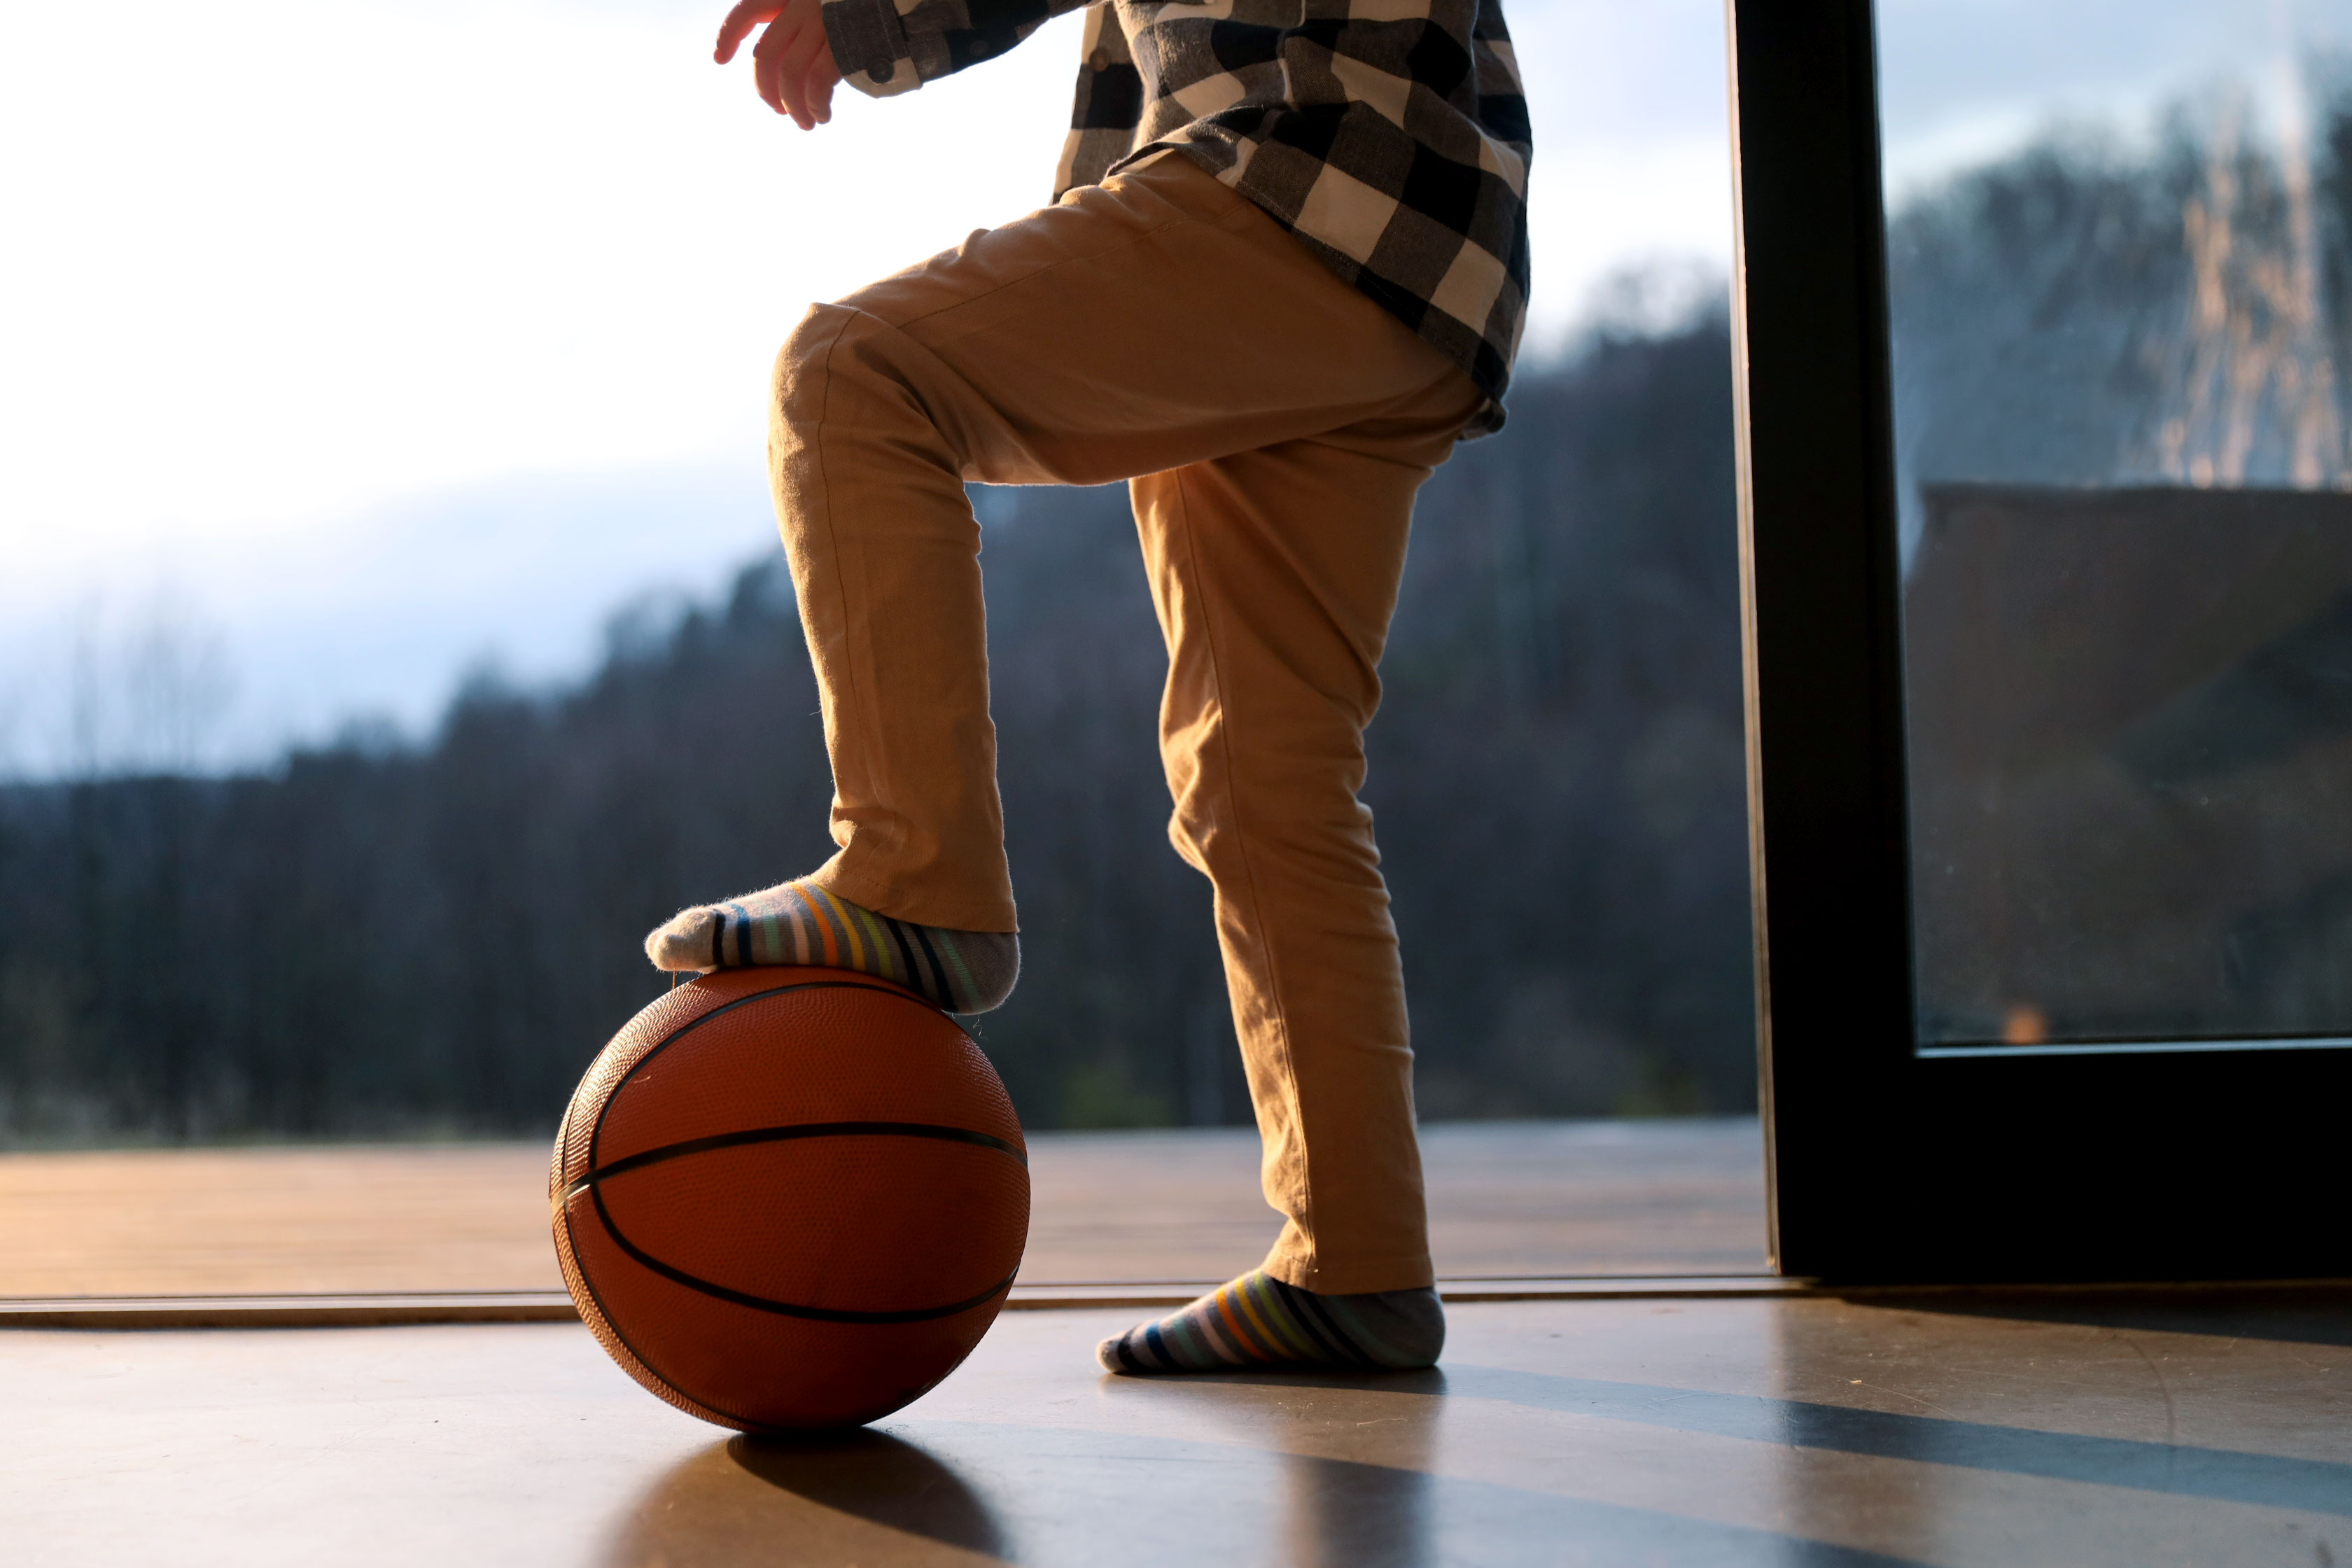 Kid with Basketball